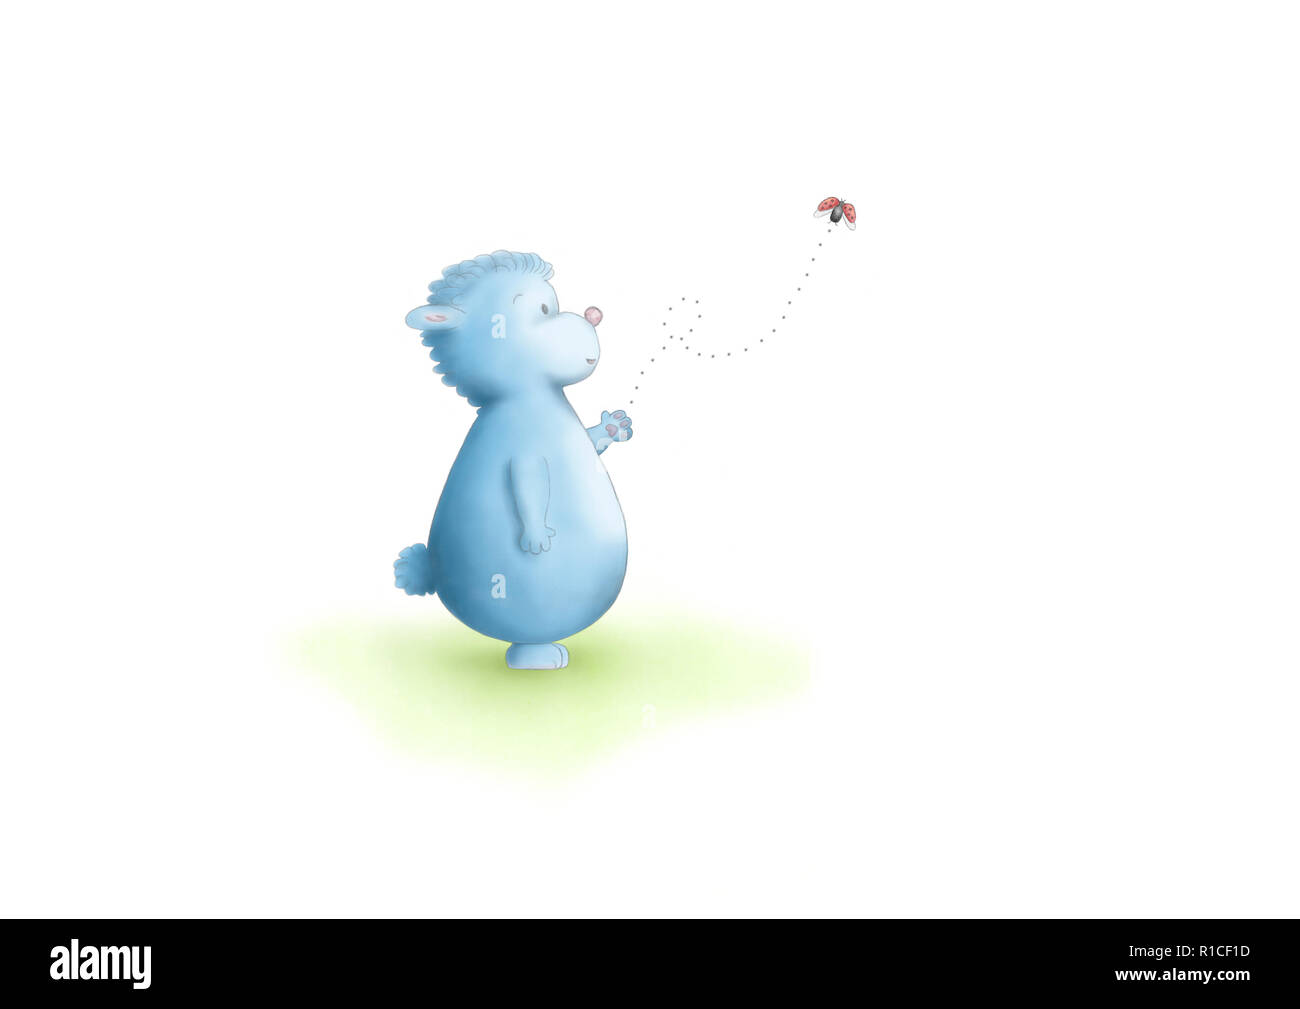 cute hand drawn illustration of blue fantasy animal standing, looking at flying ladybug, on white background Stock Photo